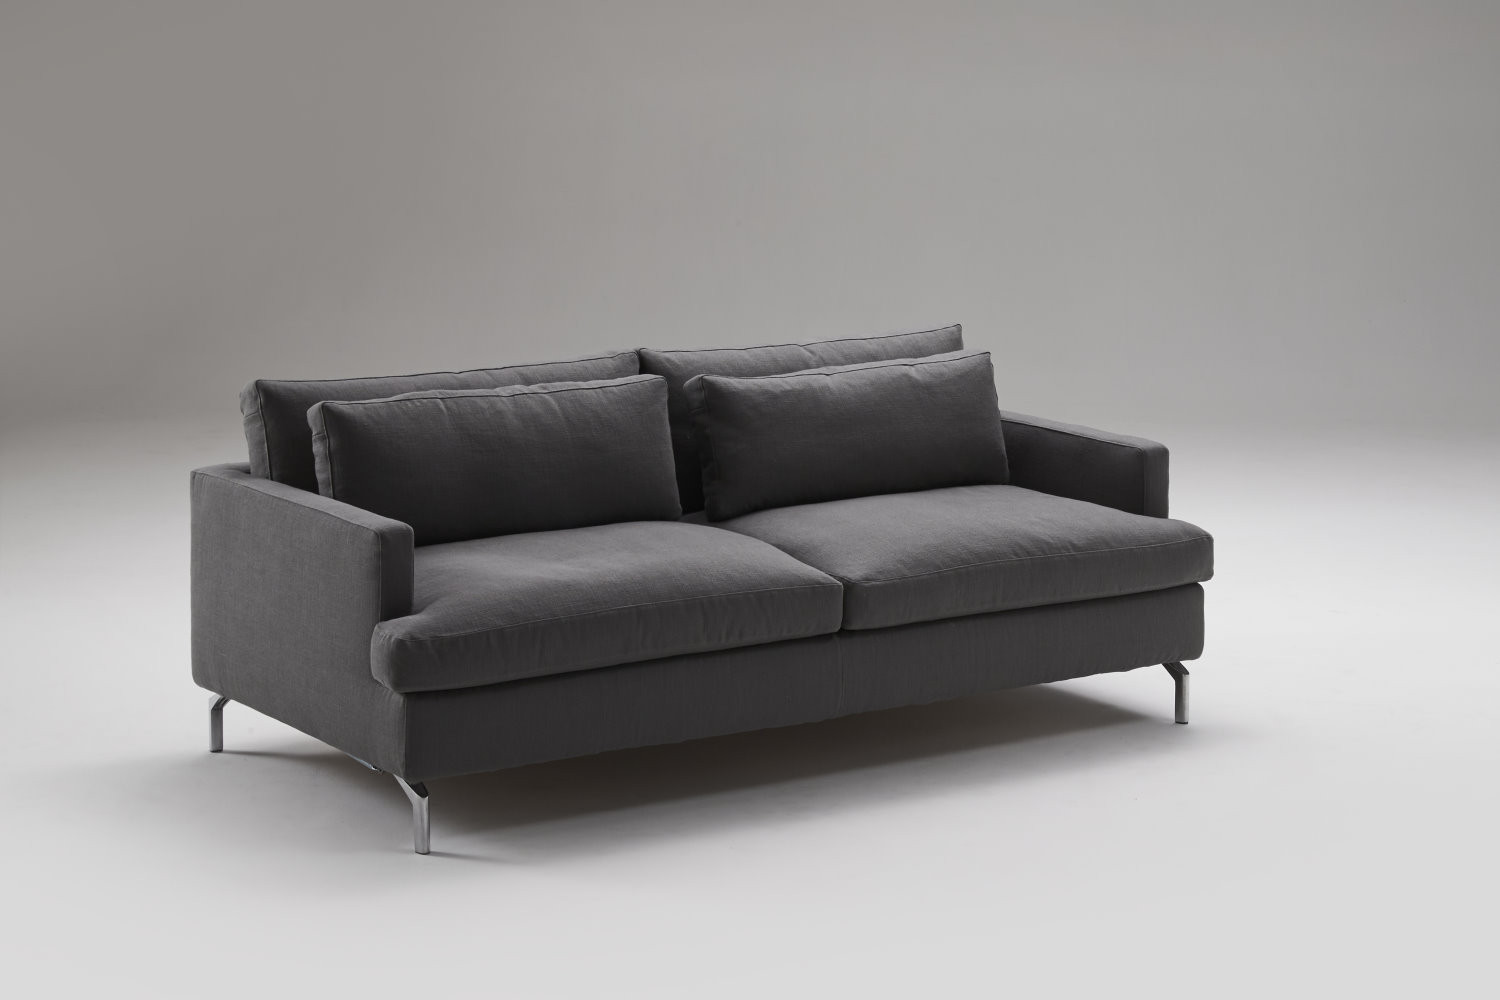 Fantastic Dave Double Sofa Bed With Chaise Longue Uwap Interior Chair Design Uwaporg